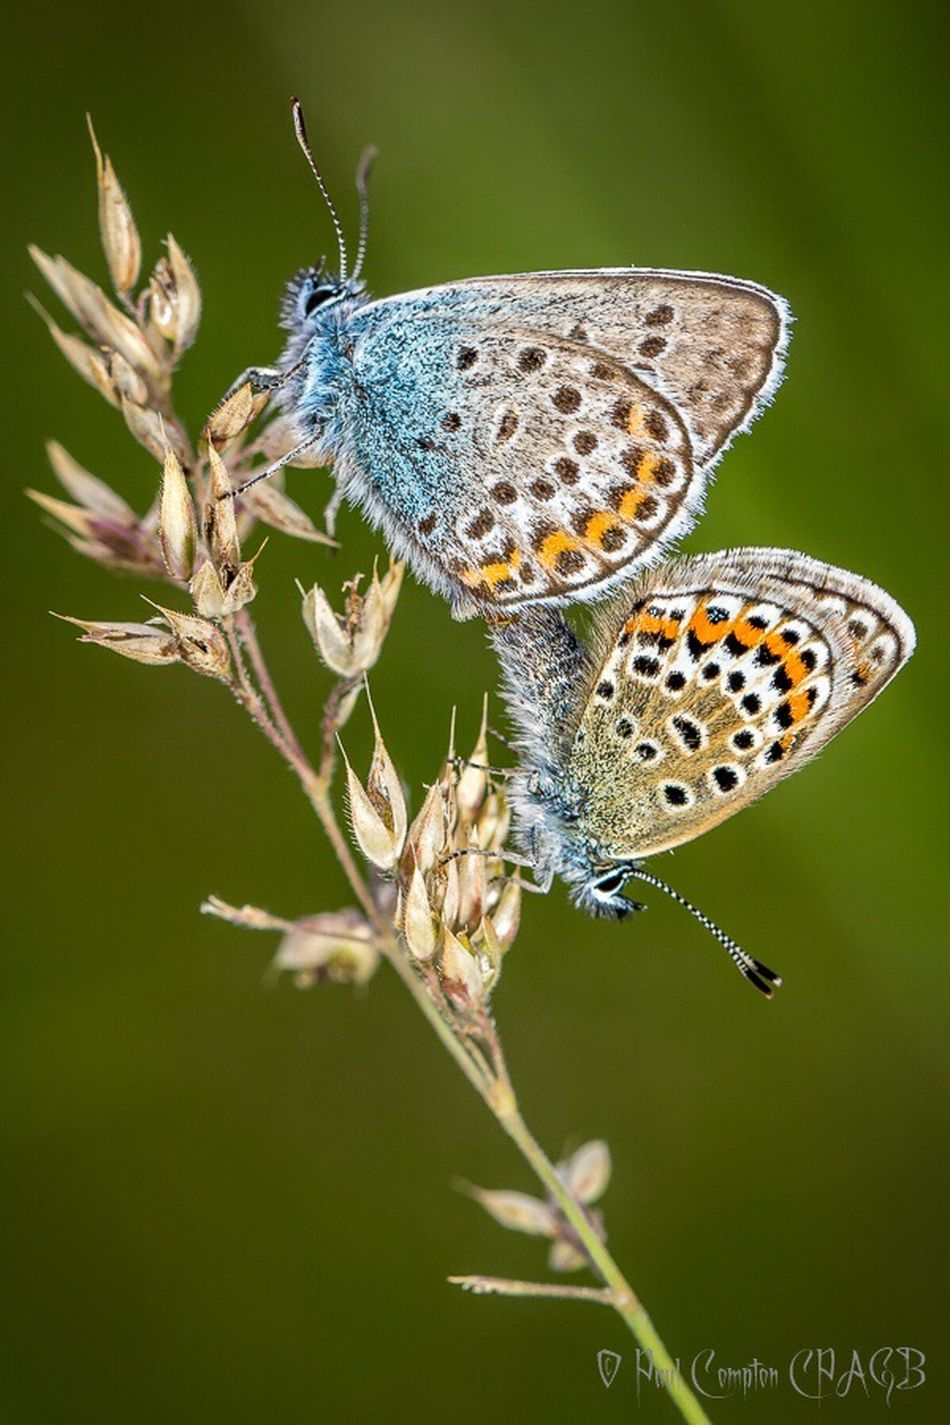 Animal Themes One Animal Close-up Animals In The Wild Wildlife Butterfly Butterflies Insect Nature Day Beauty In Nature Outdoors Zoology No People Tranquility Fragility Green Color Common Blue Butterfly Common Blue